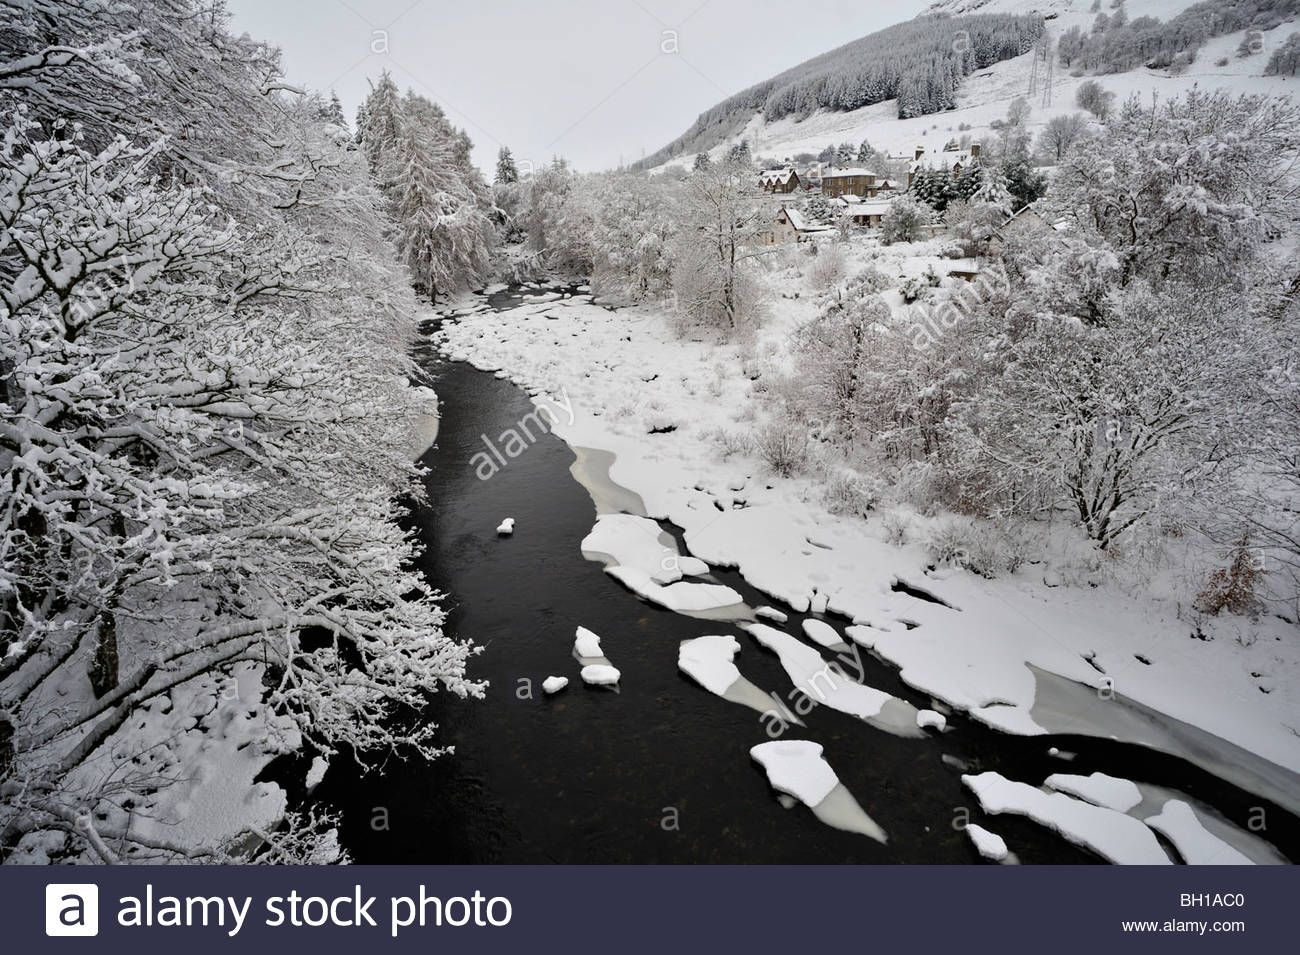 snowy-tree-lined-riverbanks-and-partly-frozen-river-seen-from-above-BH1AC0.jpg (1300×955)